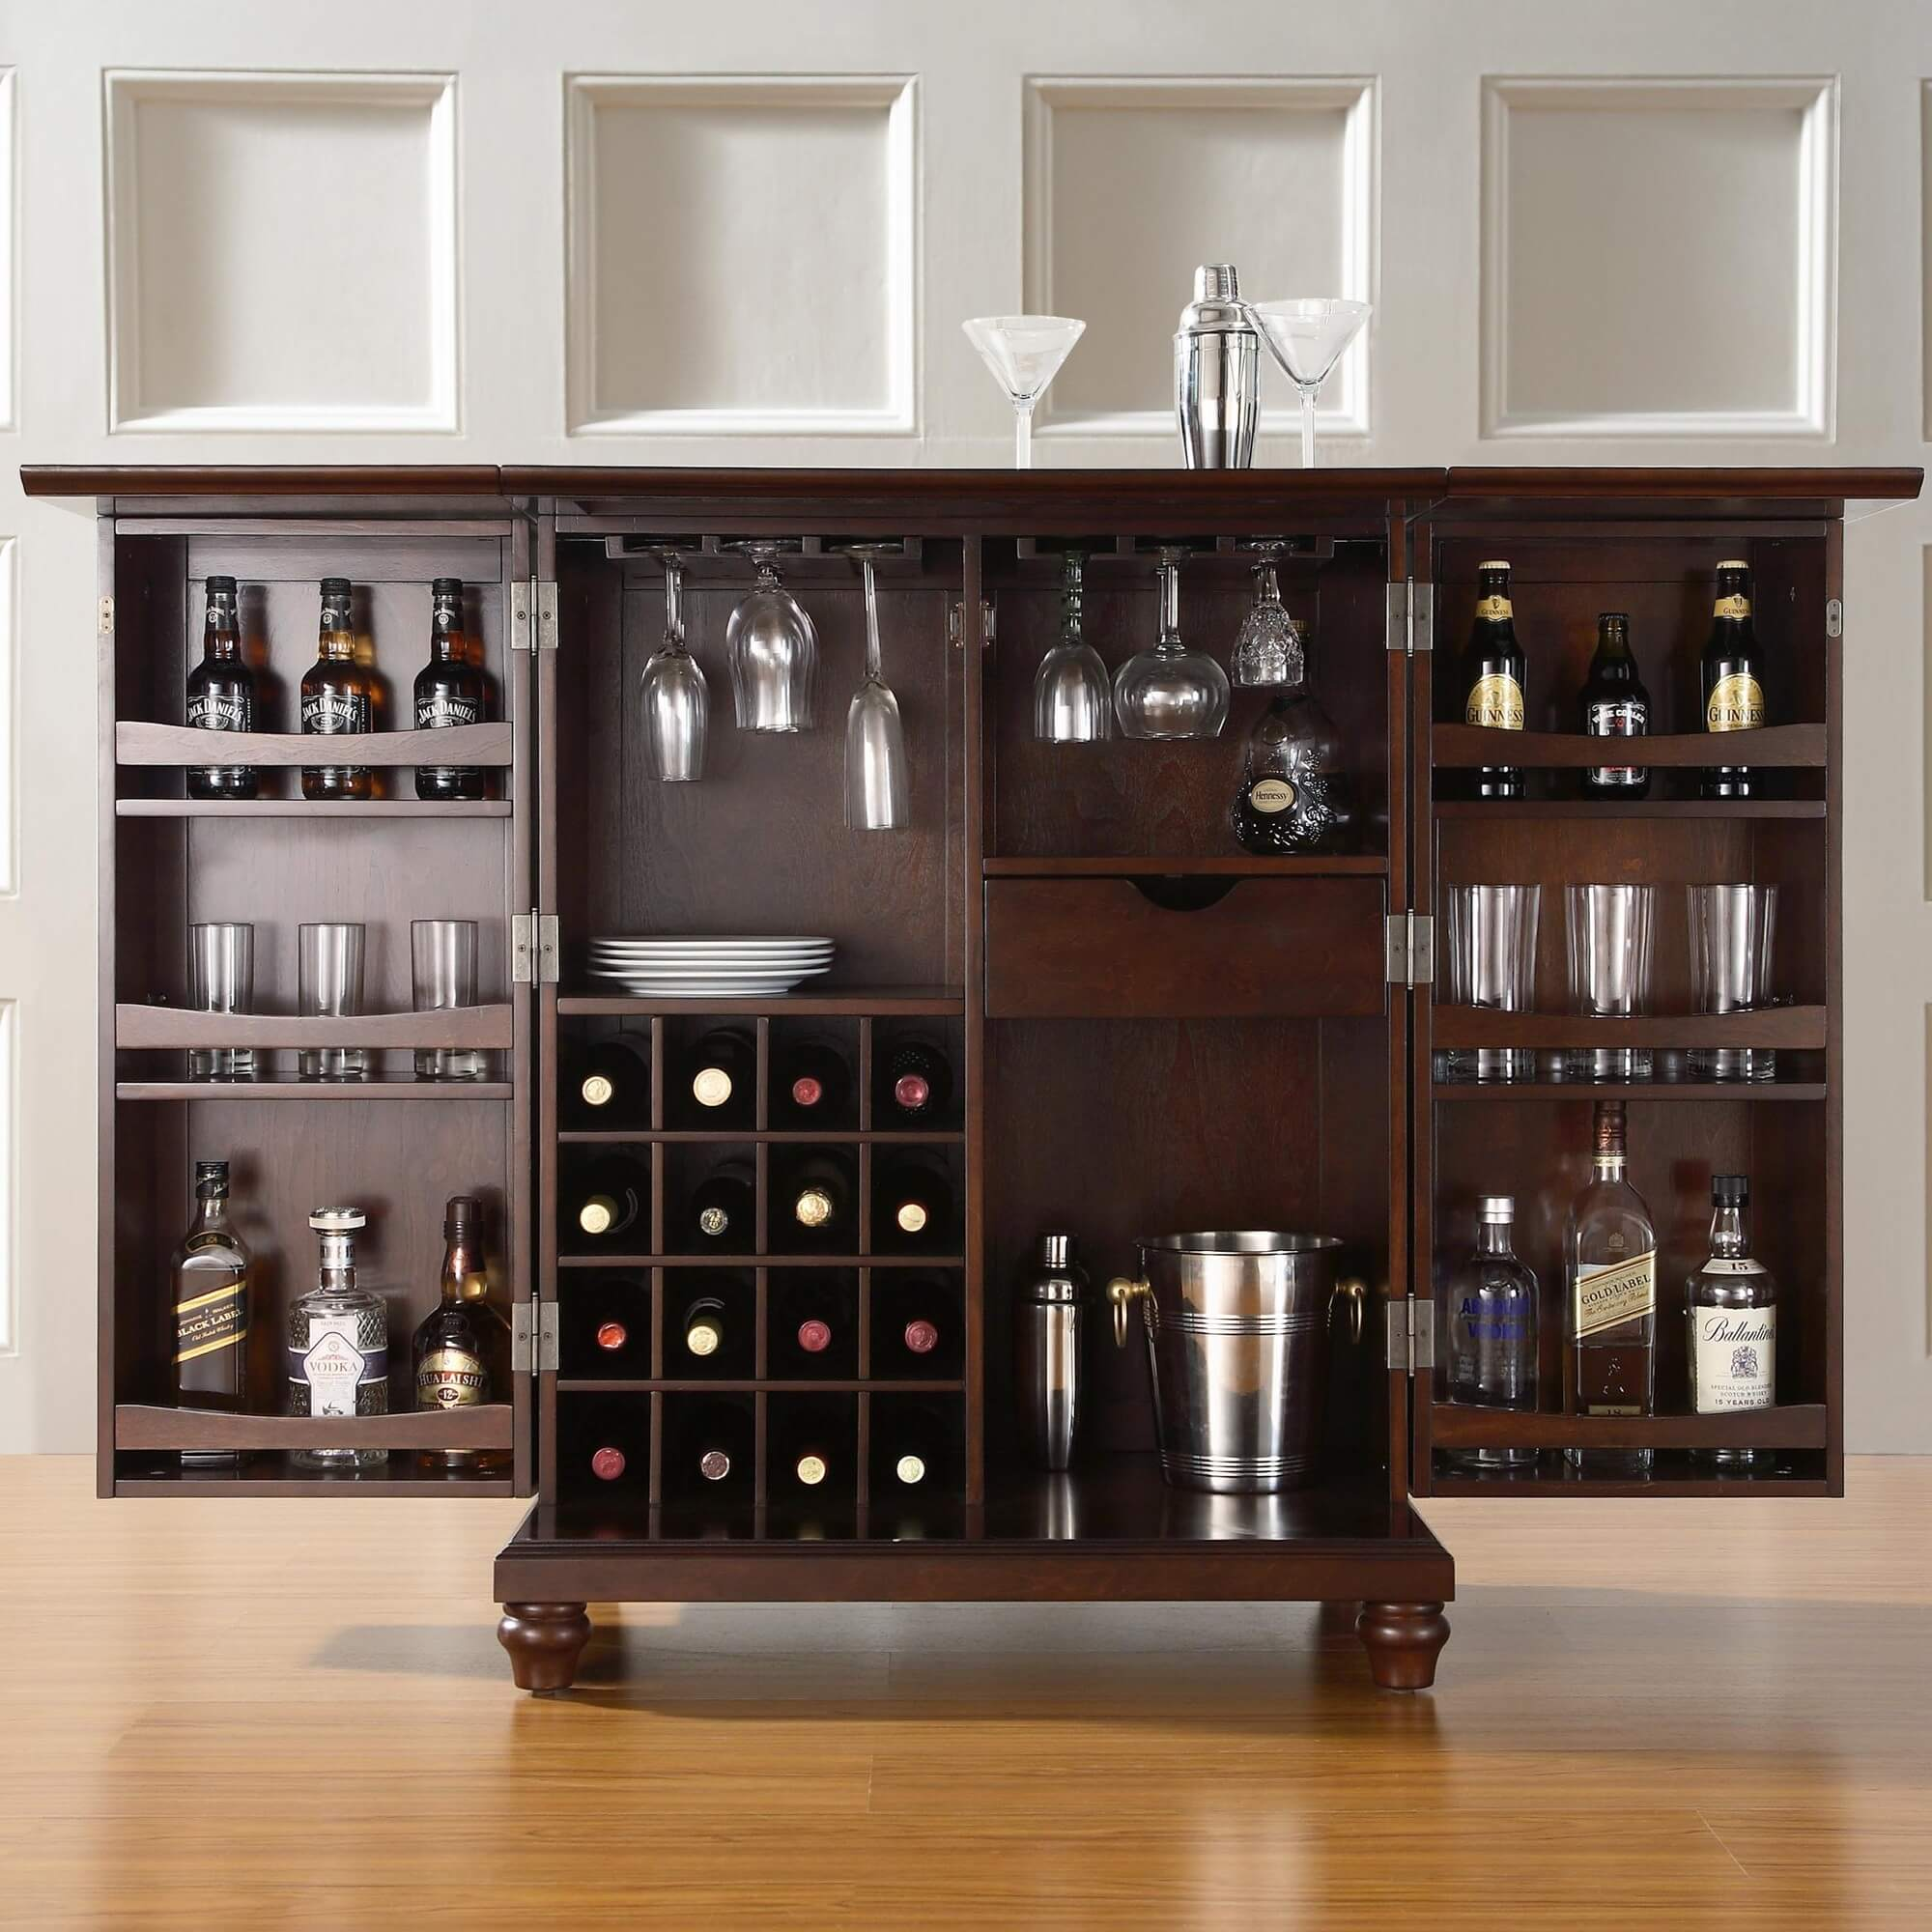 Exceptional Rear Storage View Of Elegant Compact Home Bar Cabinet Set.